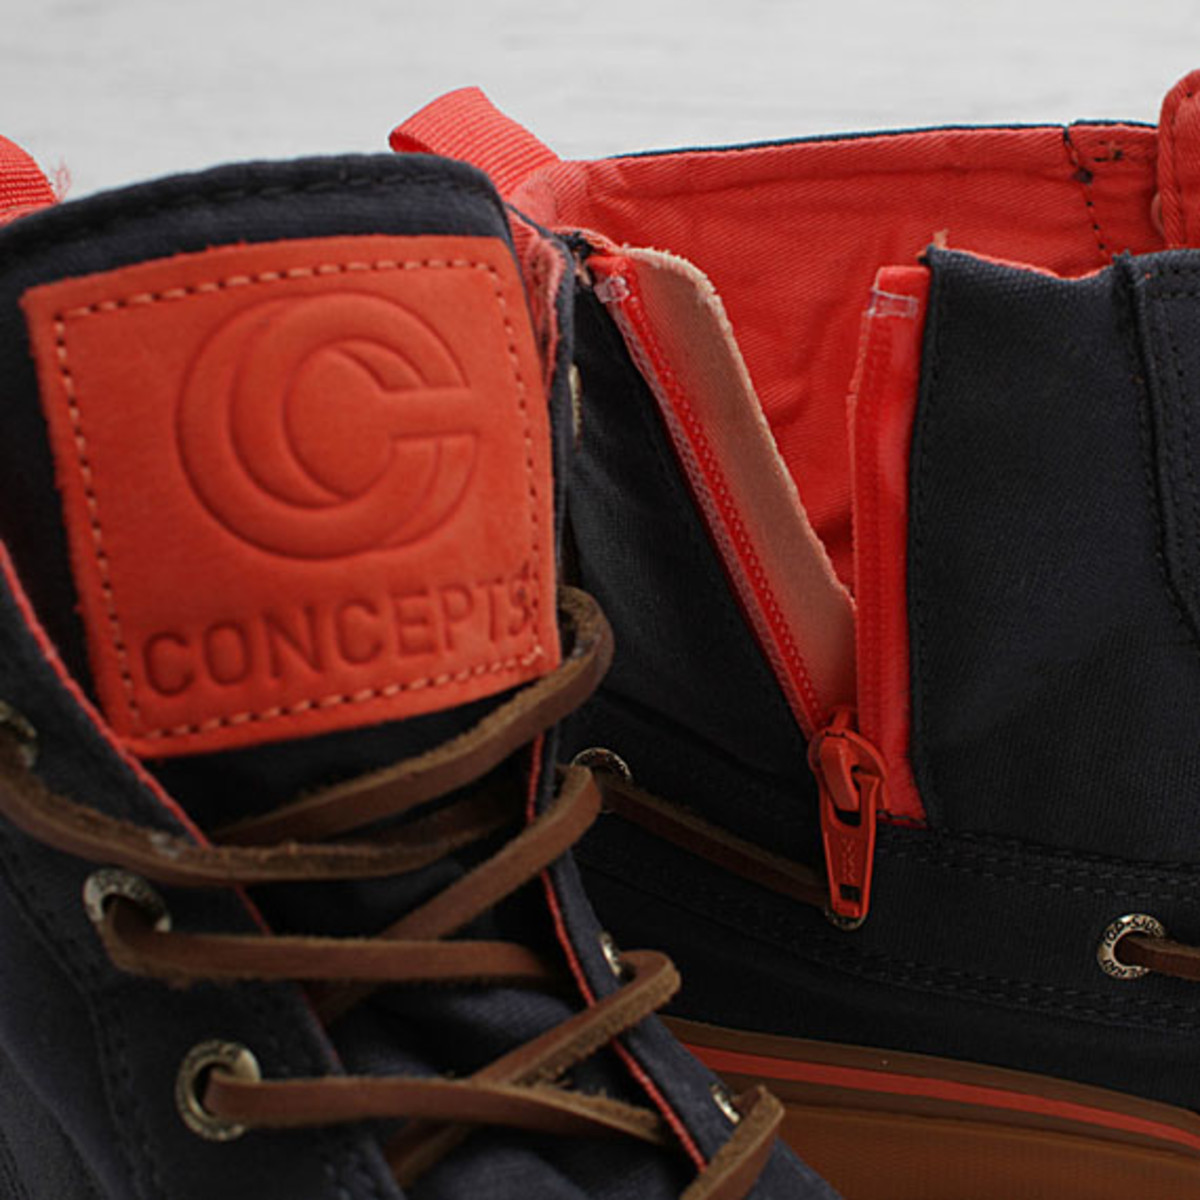 concepts-sperry-top-sider-bahama-boot-fall-2012-18